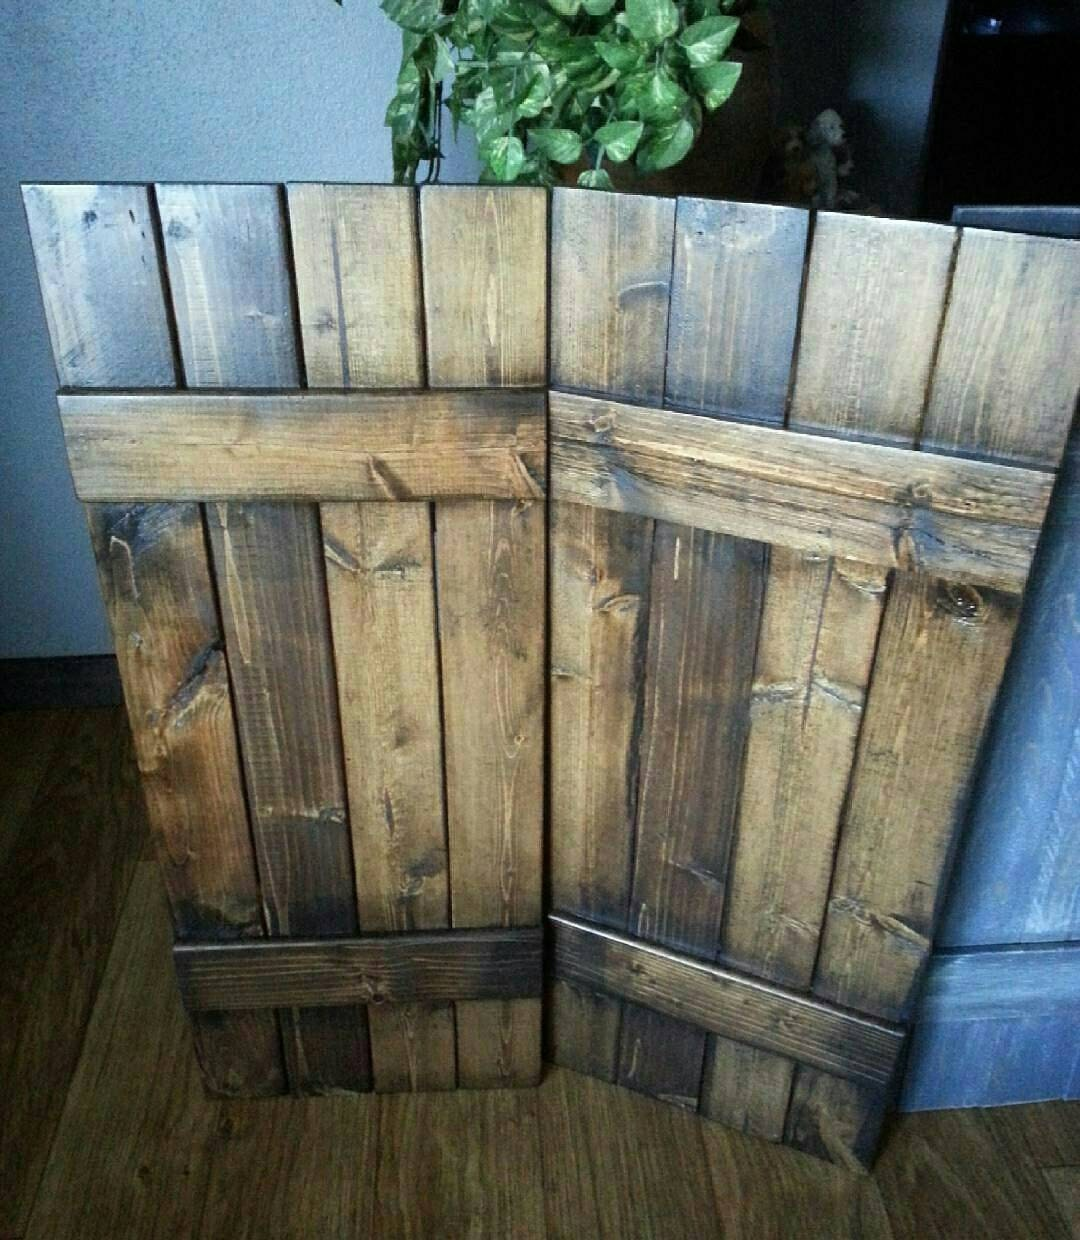 shutters headboards wooden kingdom interior the decor king decorative rustic wood decorgroot of groot home